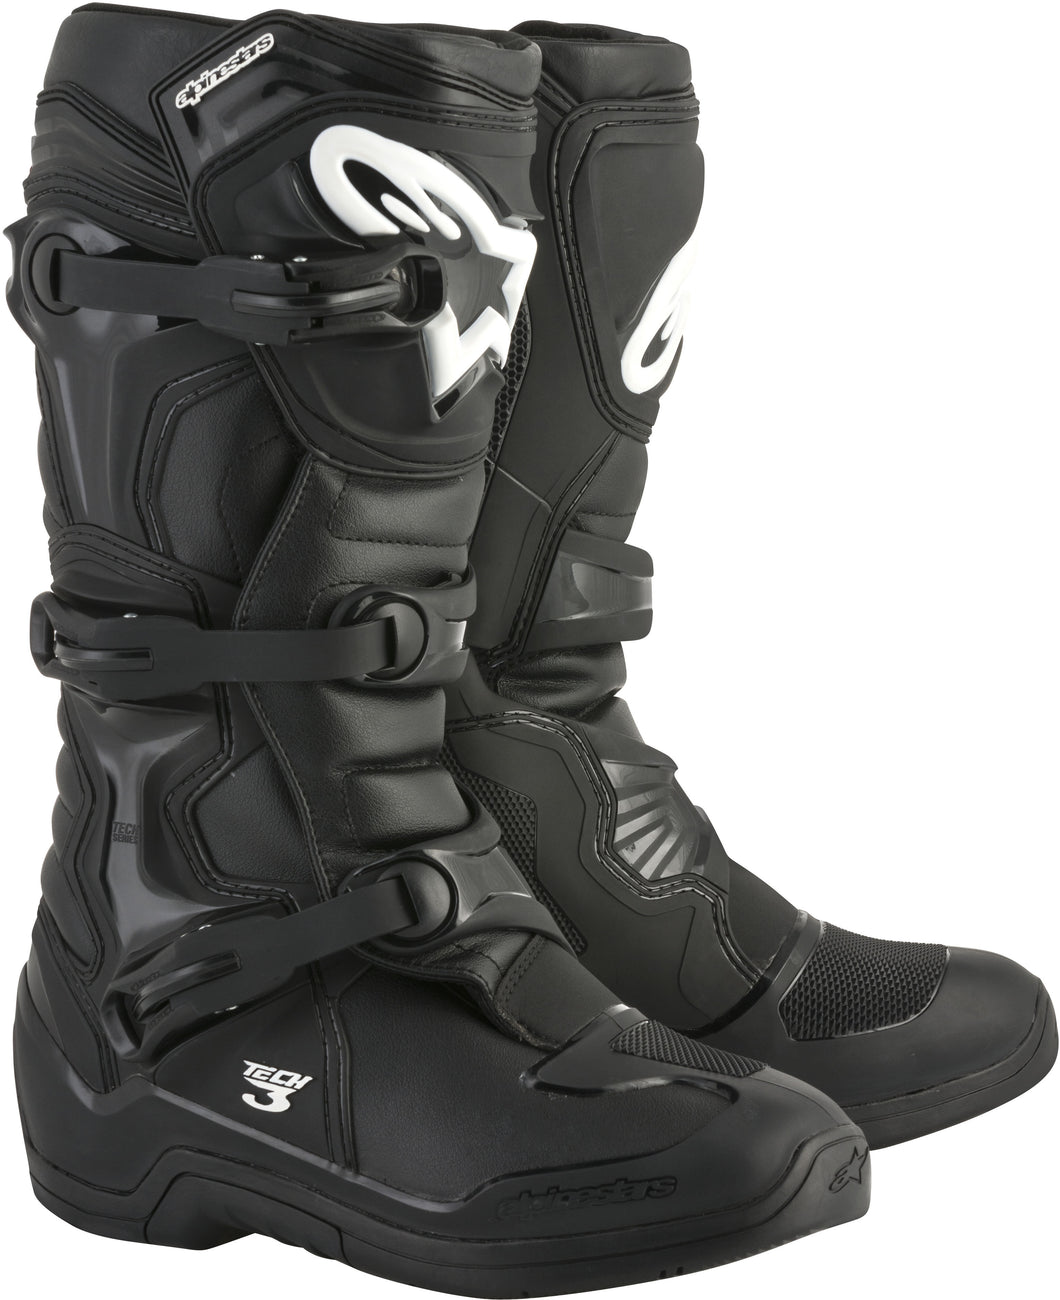 ALPINESTARS | TECH 3 BOOTS BLACK SZ 11 | 482-04111